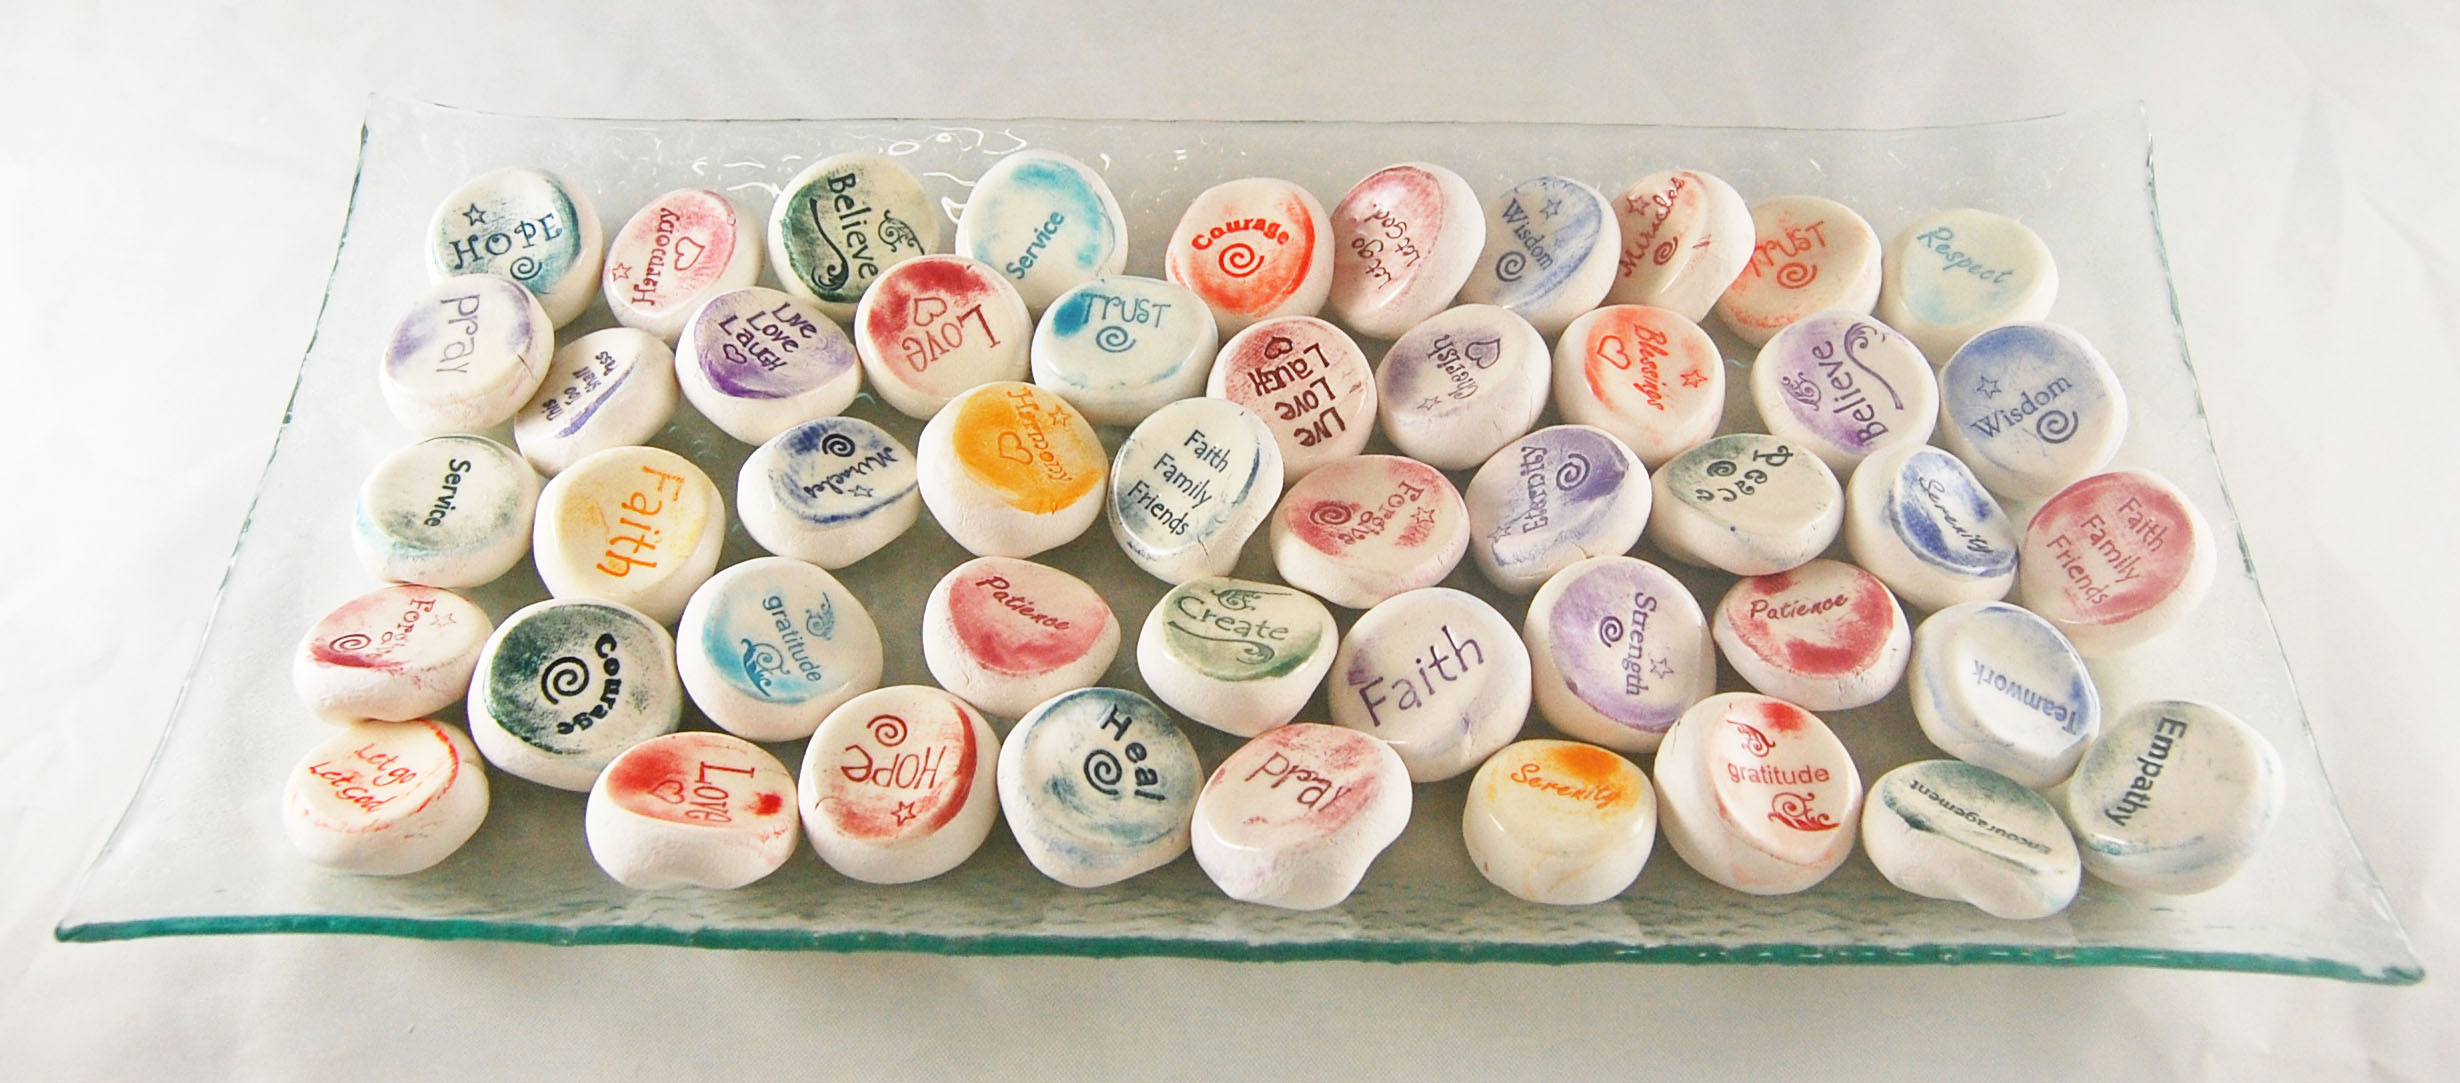 Ceramic Word Stones - Glass Tray Display - 75 Stones